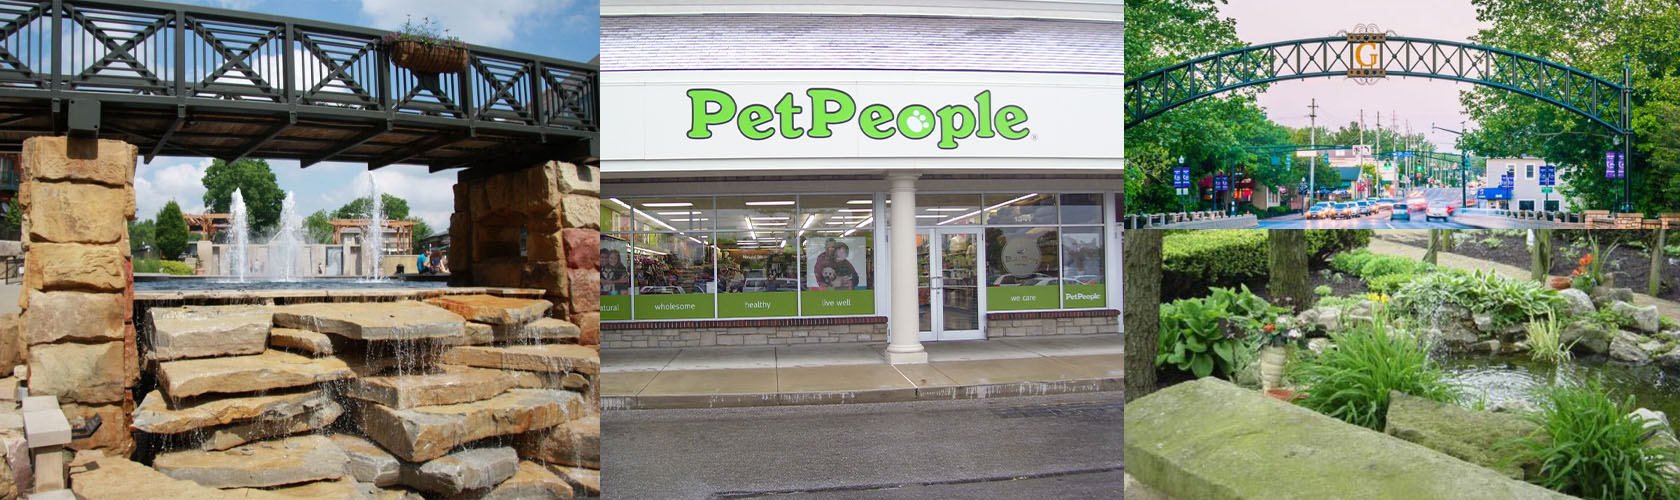 Pet People collage in Gahanna